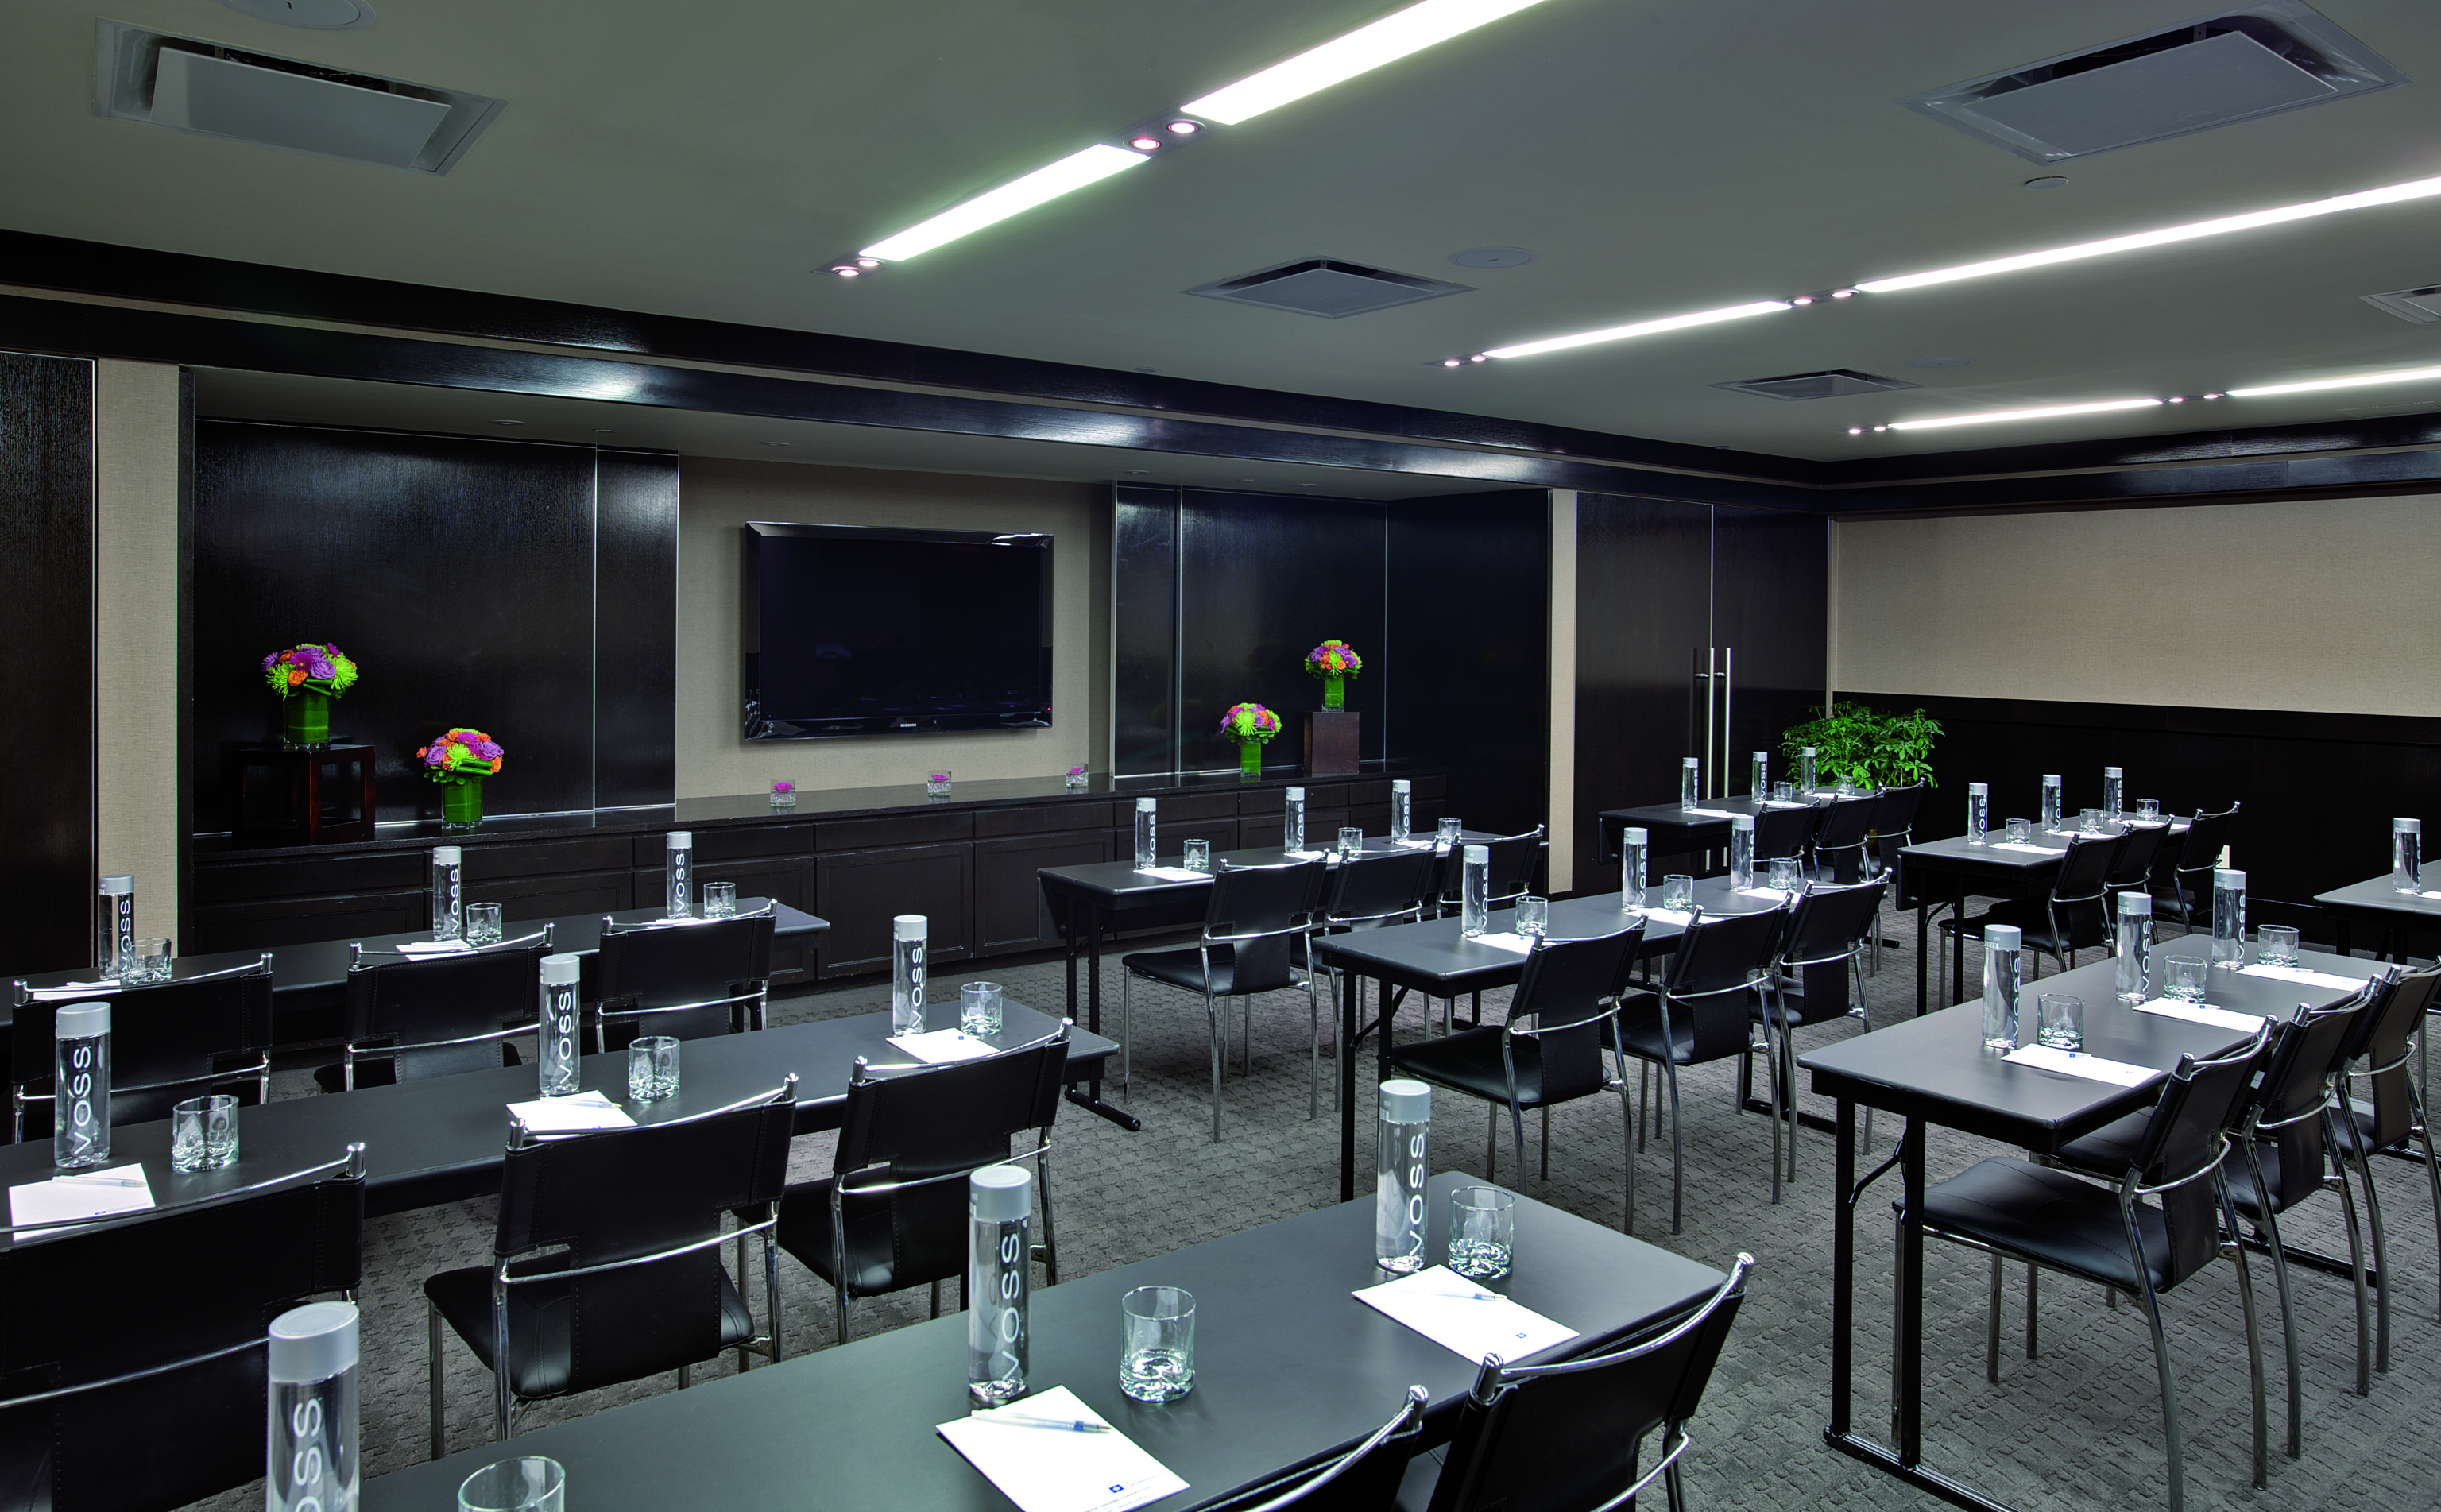 Conference Room  event space at Hilton New York Fashion District in New York City, NYC, NY/NJ Area